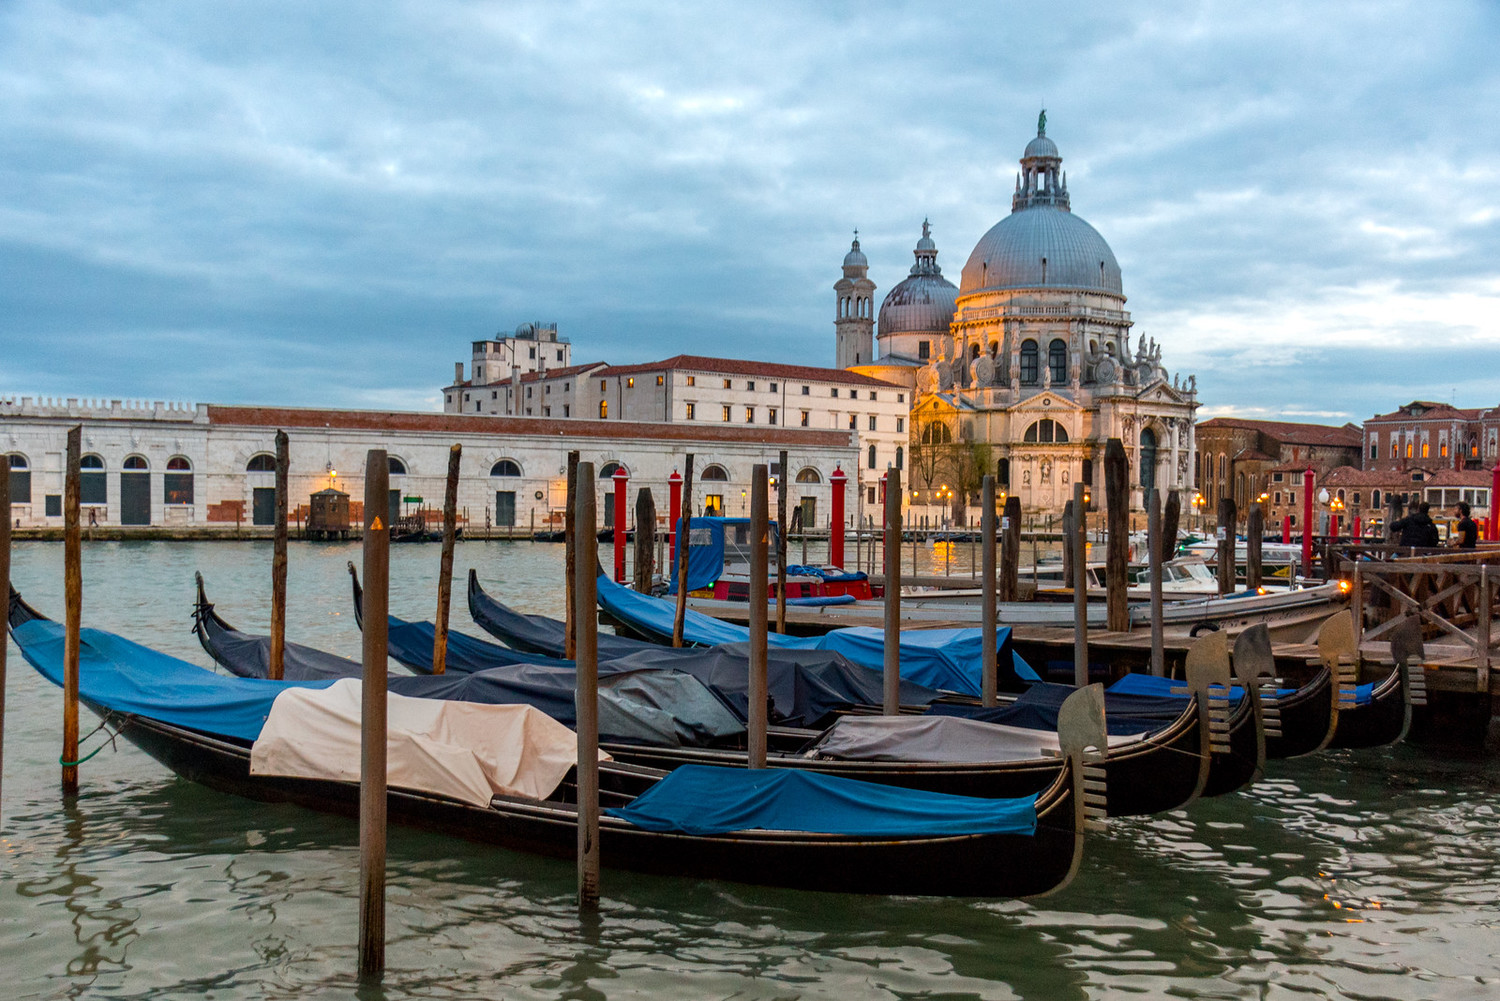 Hotel Monaco & Grand Canal: History on Venice's Canal — No Destinations